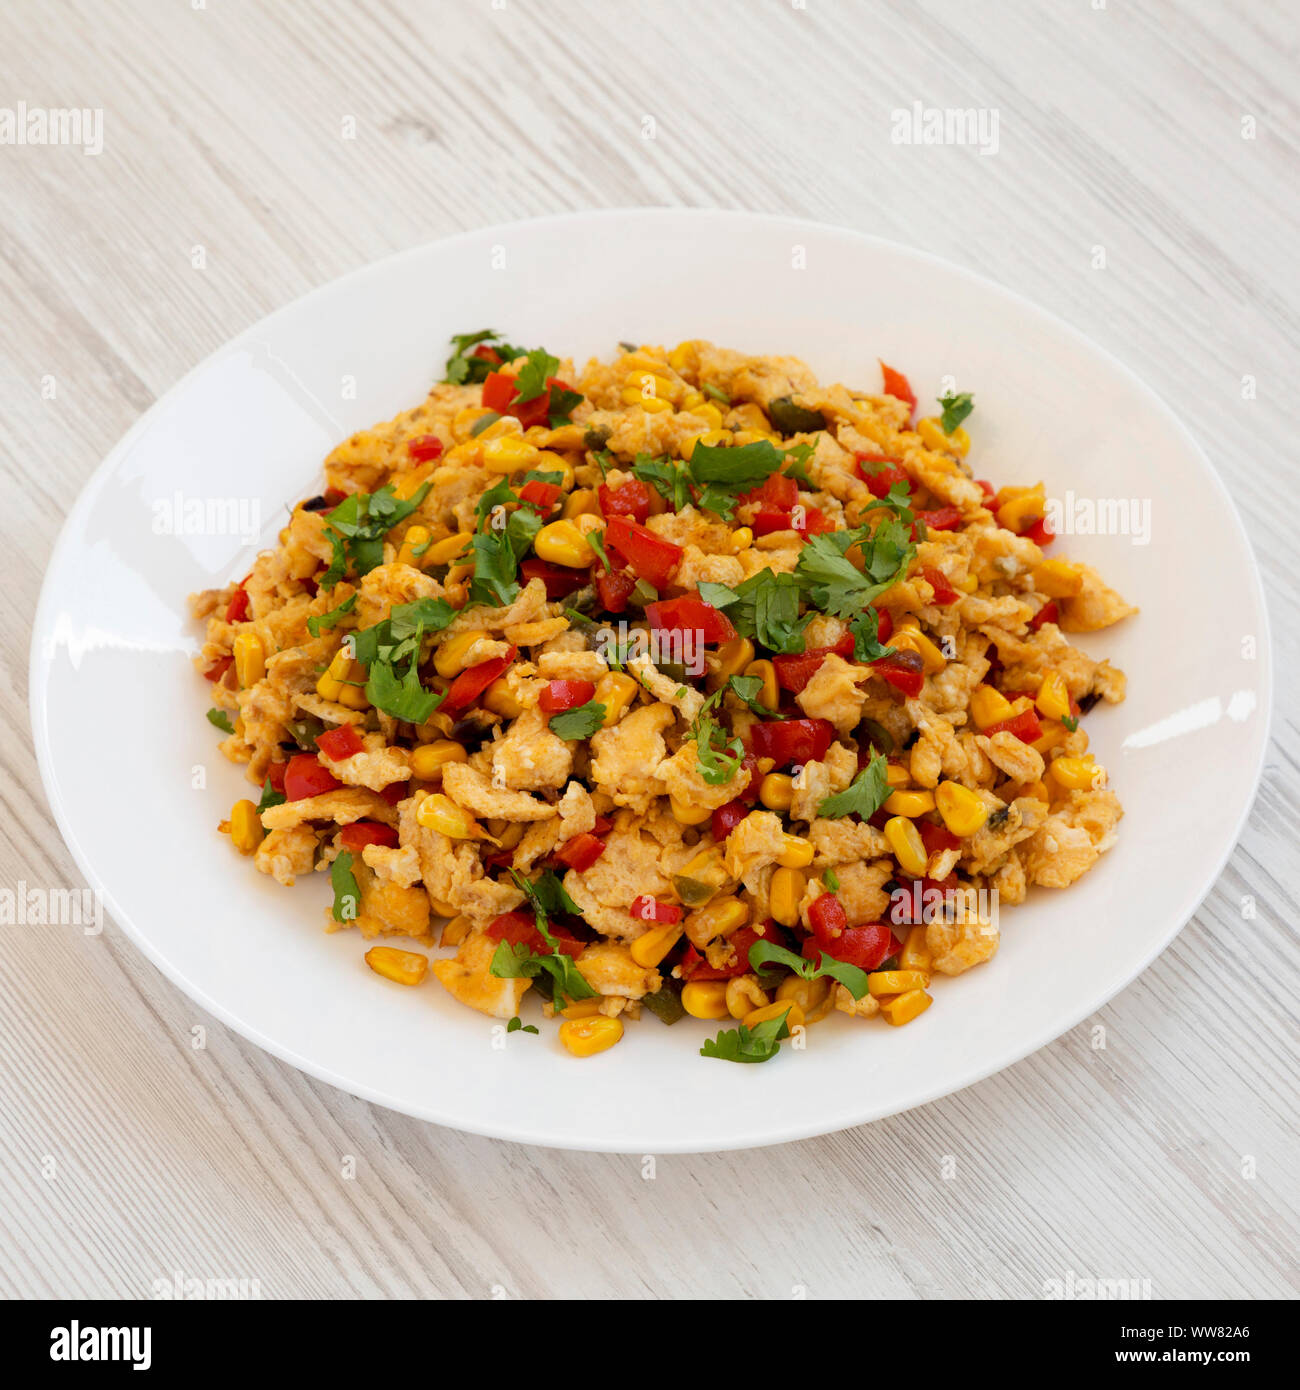 Homemade southwestern egg scramble on a white plate on a white wooden background, side view. Close-up. Stock Photo